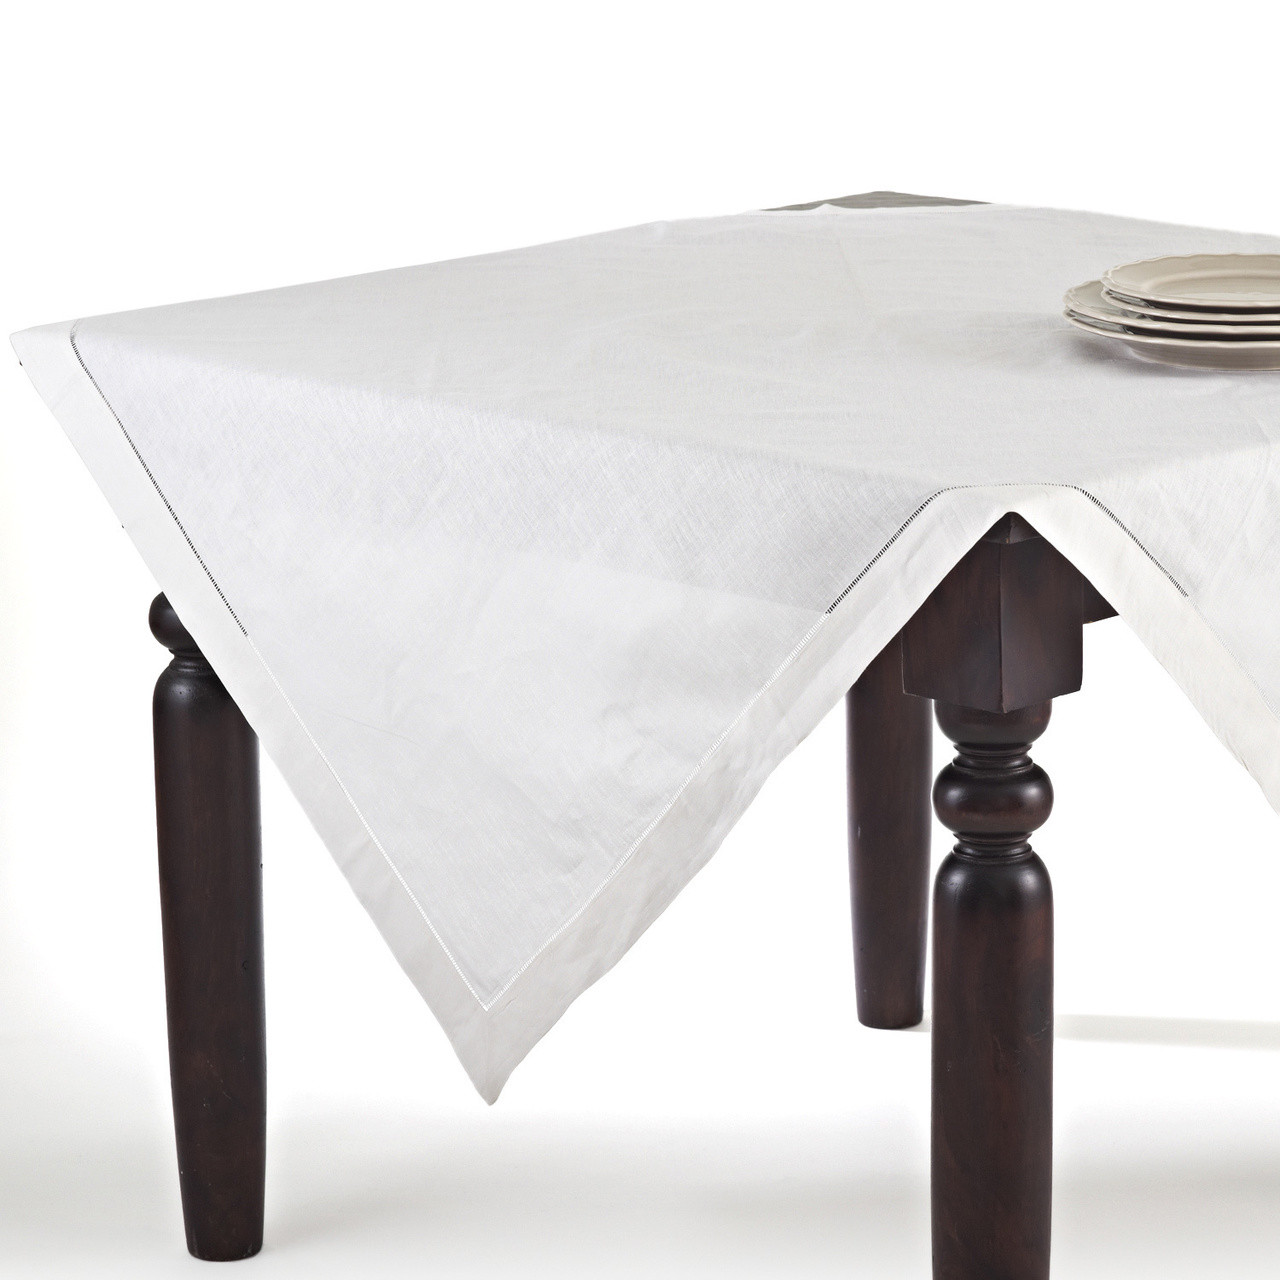 Fennco Styles Handmade Basic Hemstitch Linen Cotton Tablecloths